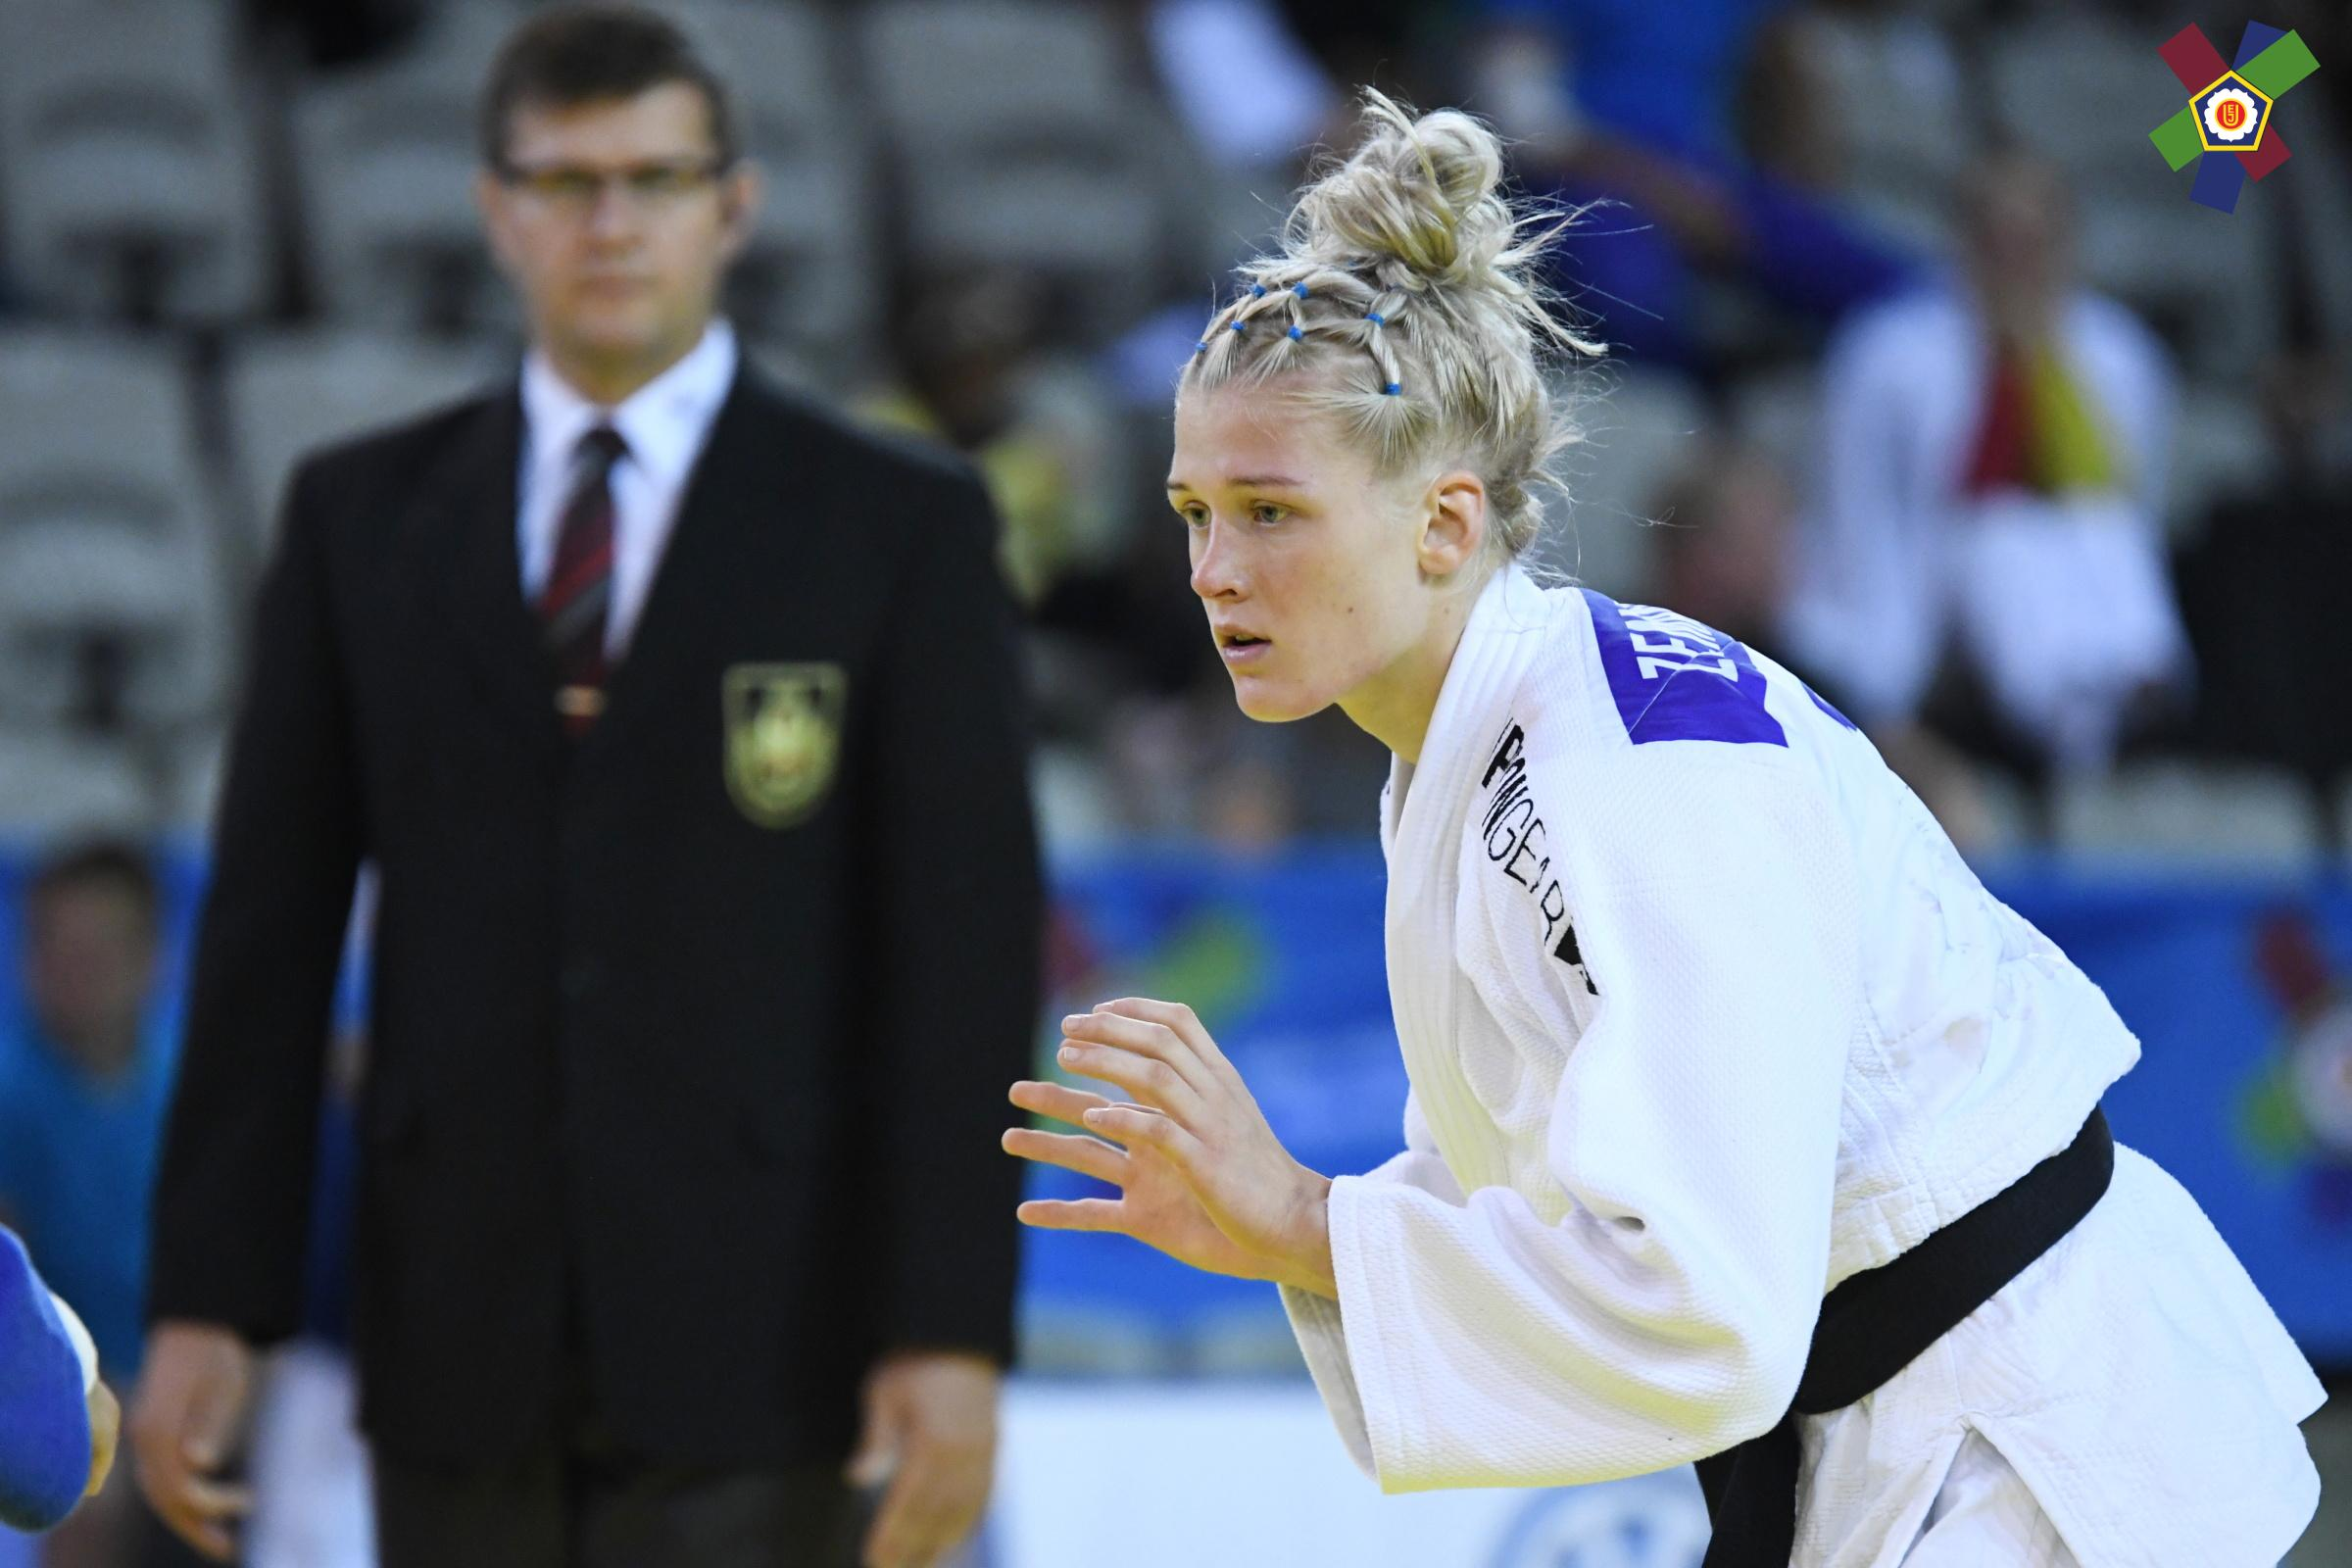 Judo-Junior-European-cup-Prague-2019-ZEMANOVA-Vera-1